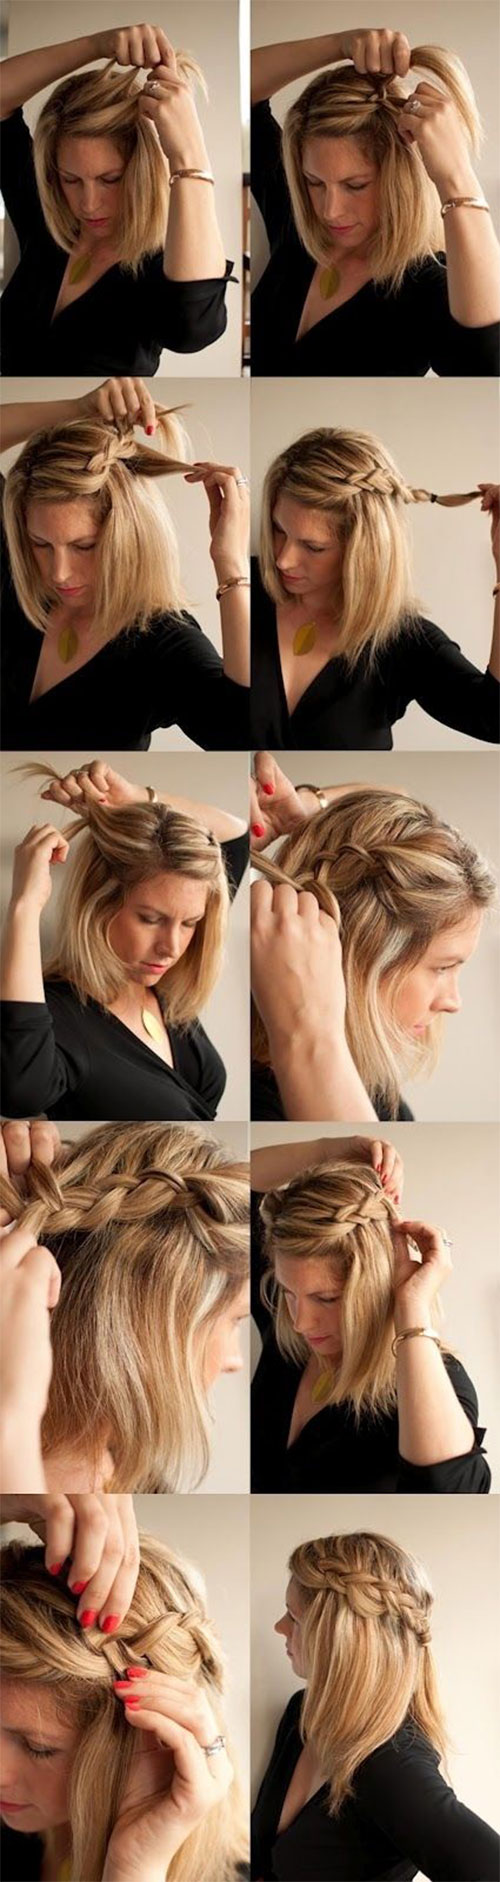 20-Easy-Step-By-Step-Summer-Braids-Style-Tutorials-For-Beginners-2015-12